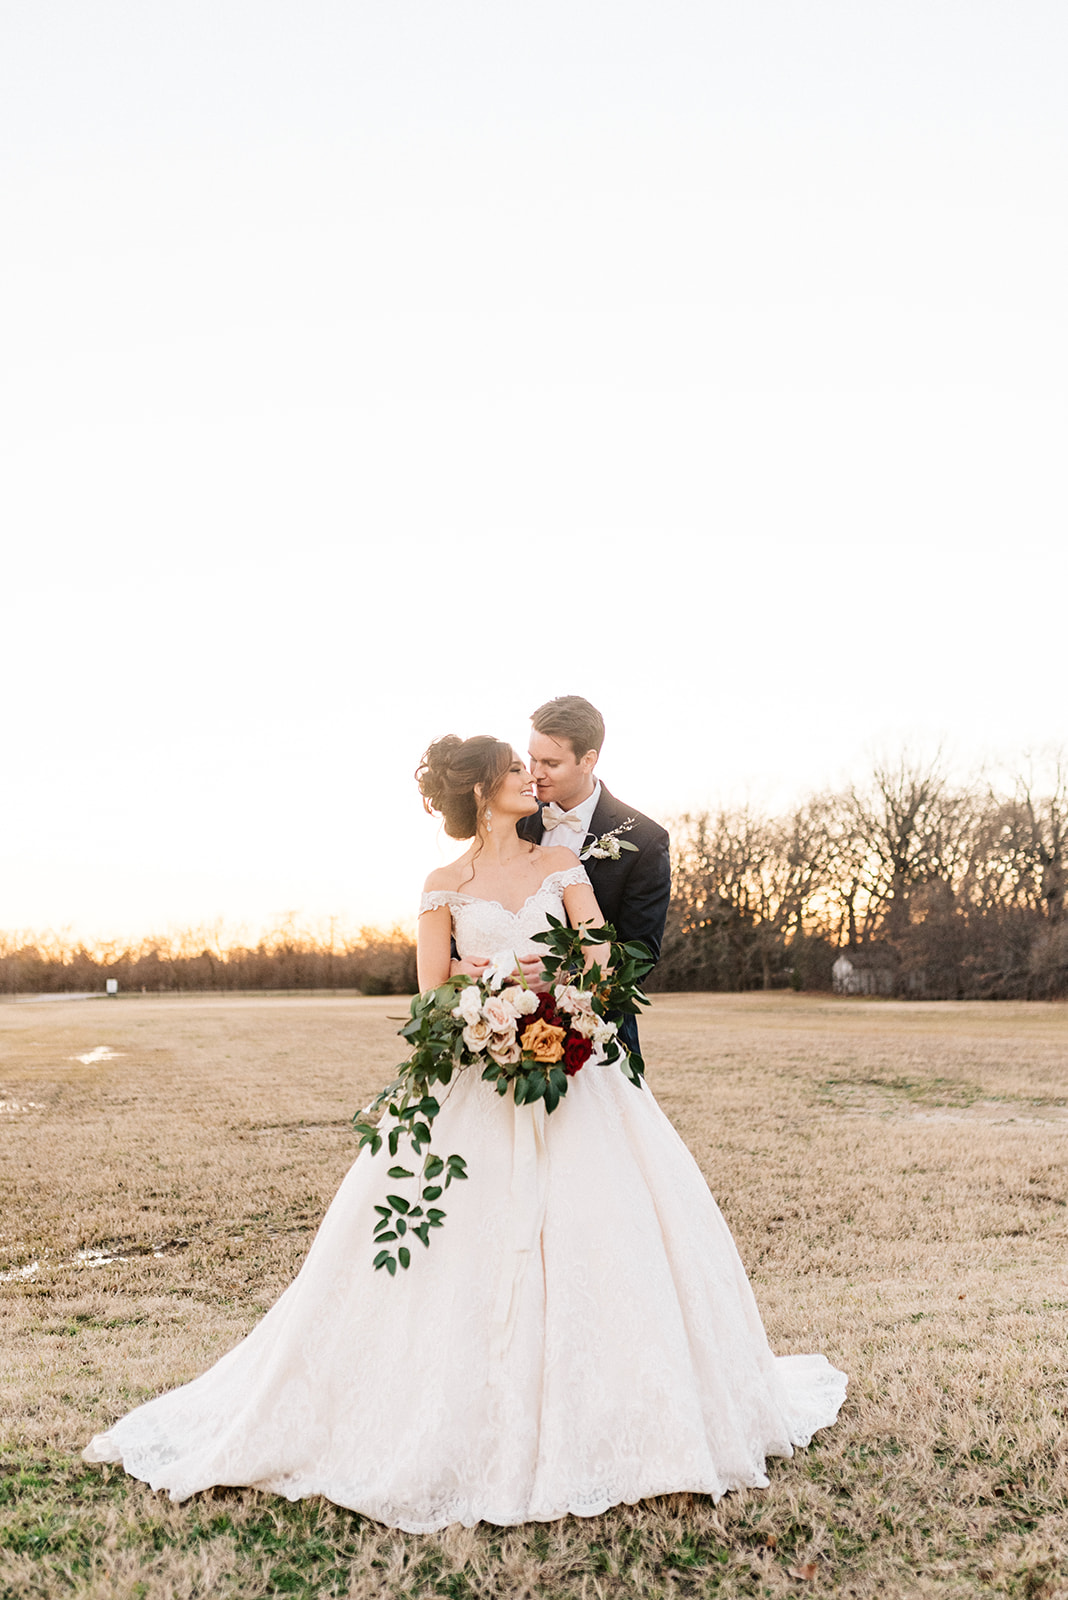 A Winter Wedding at The Emerson - Featuring:Planning: Bash Co EventsPhotography: Mikayla DawnVenue: The EmersonRentals: Coral Lane